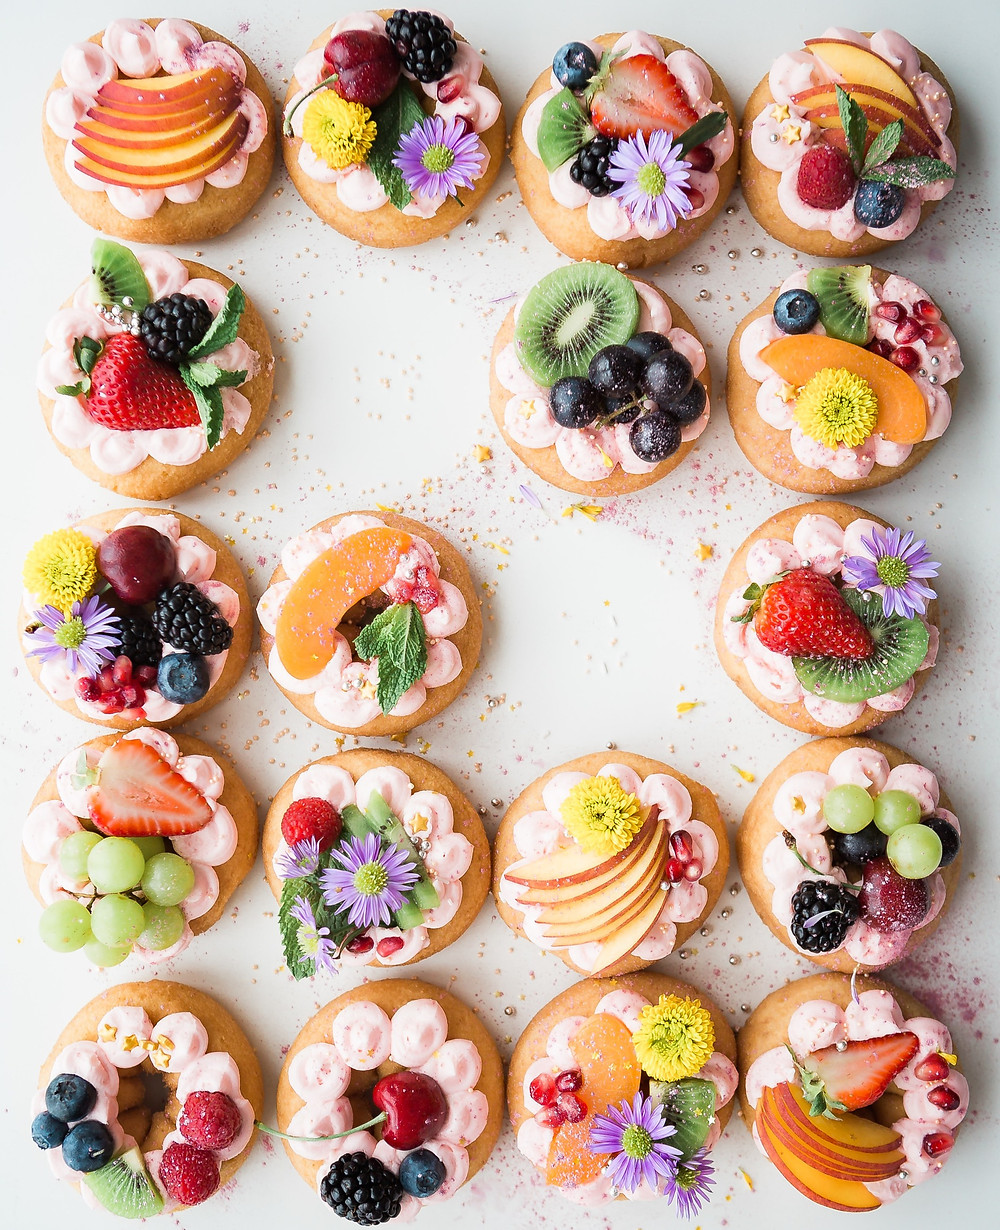 Donuts-filled-with-cream-and-decorated-with-flowers-and-fruit